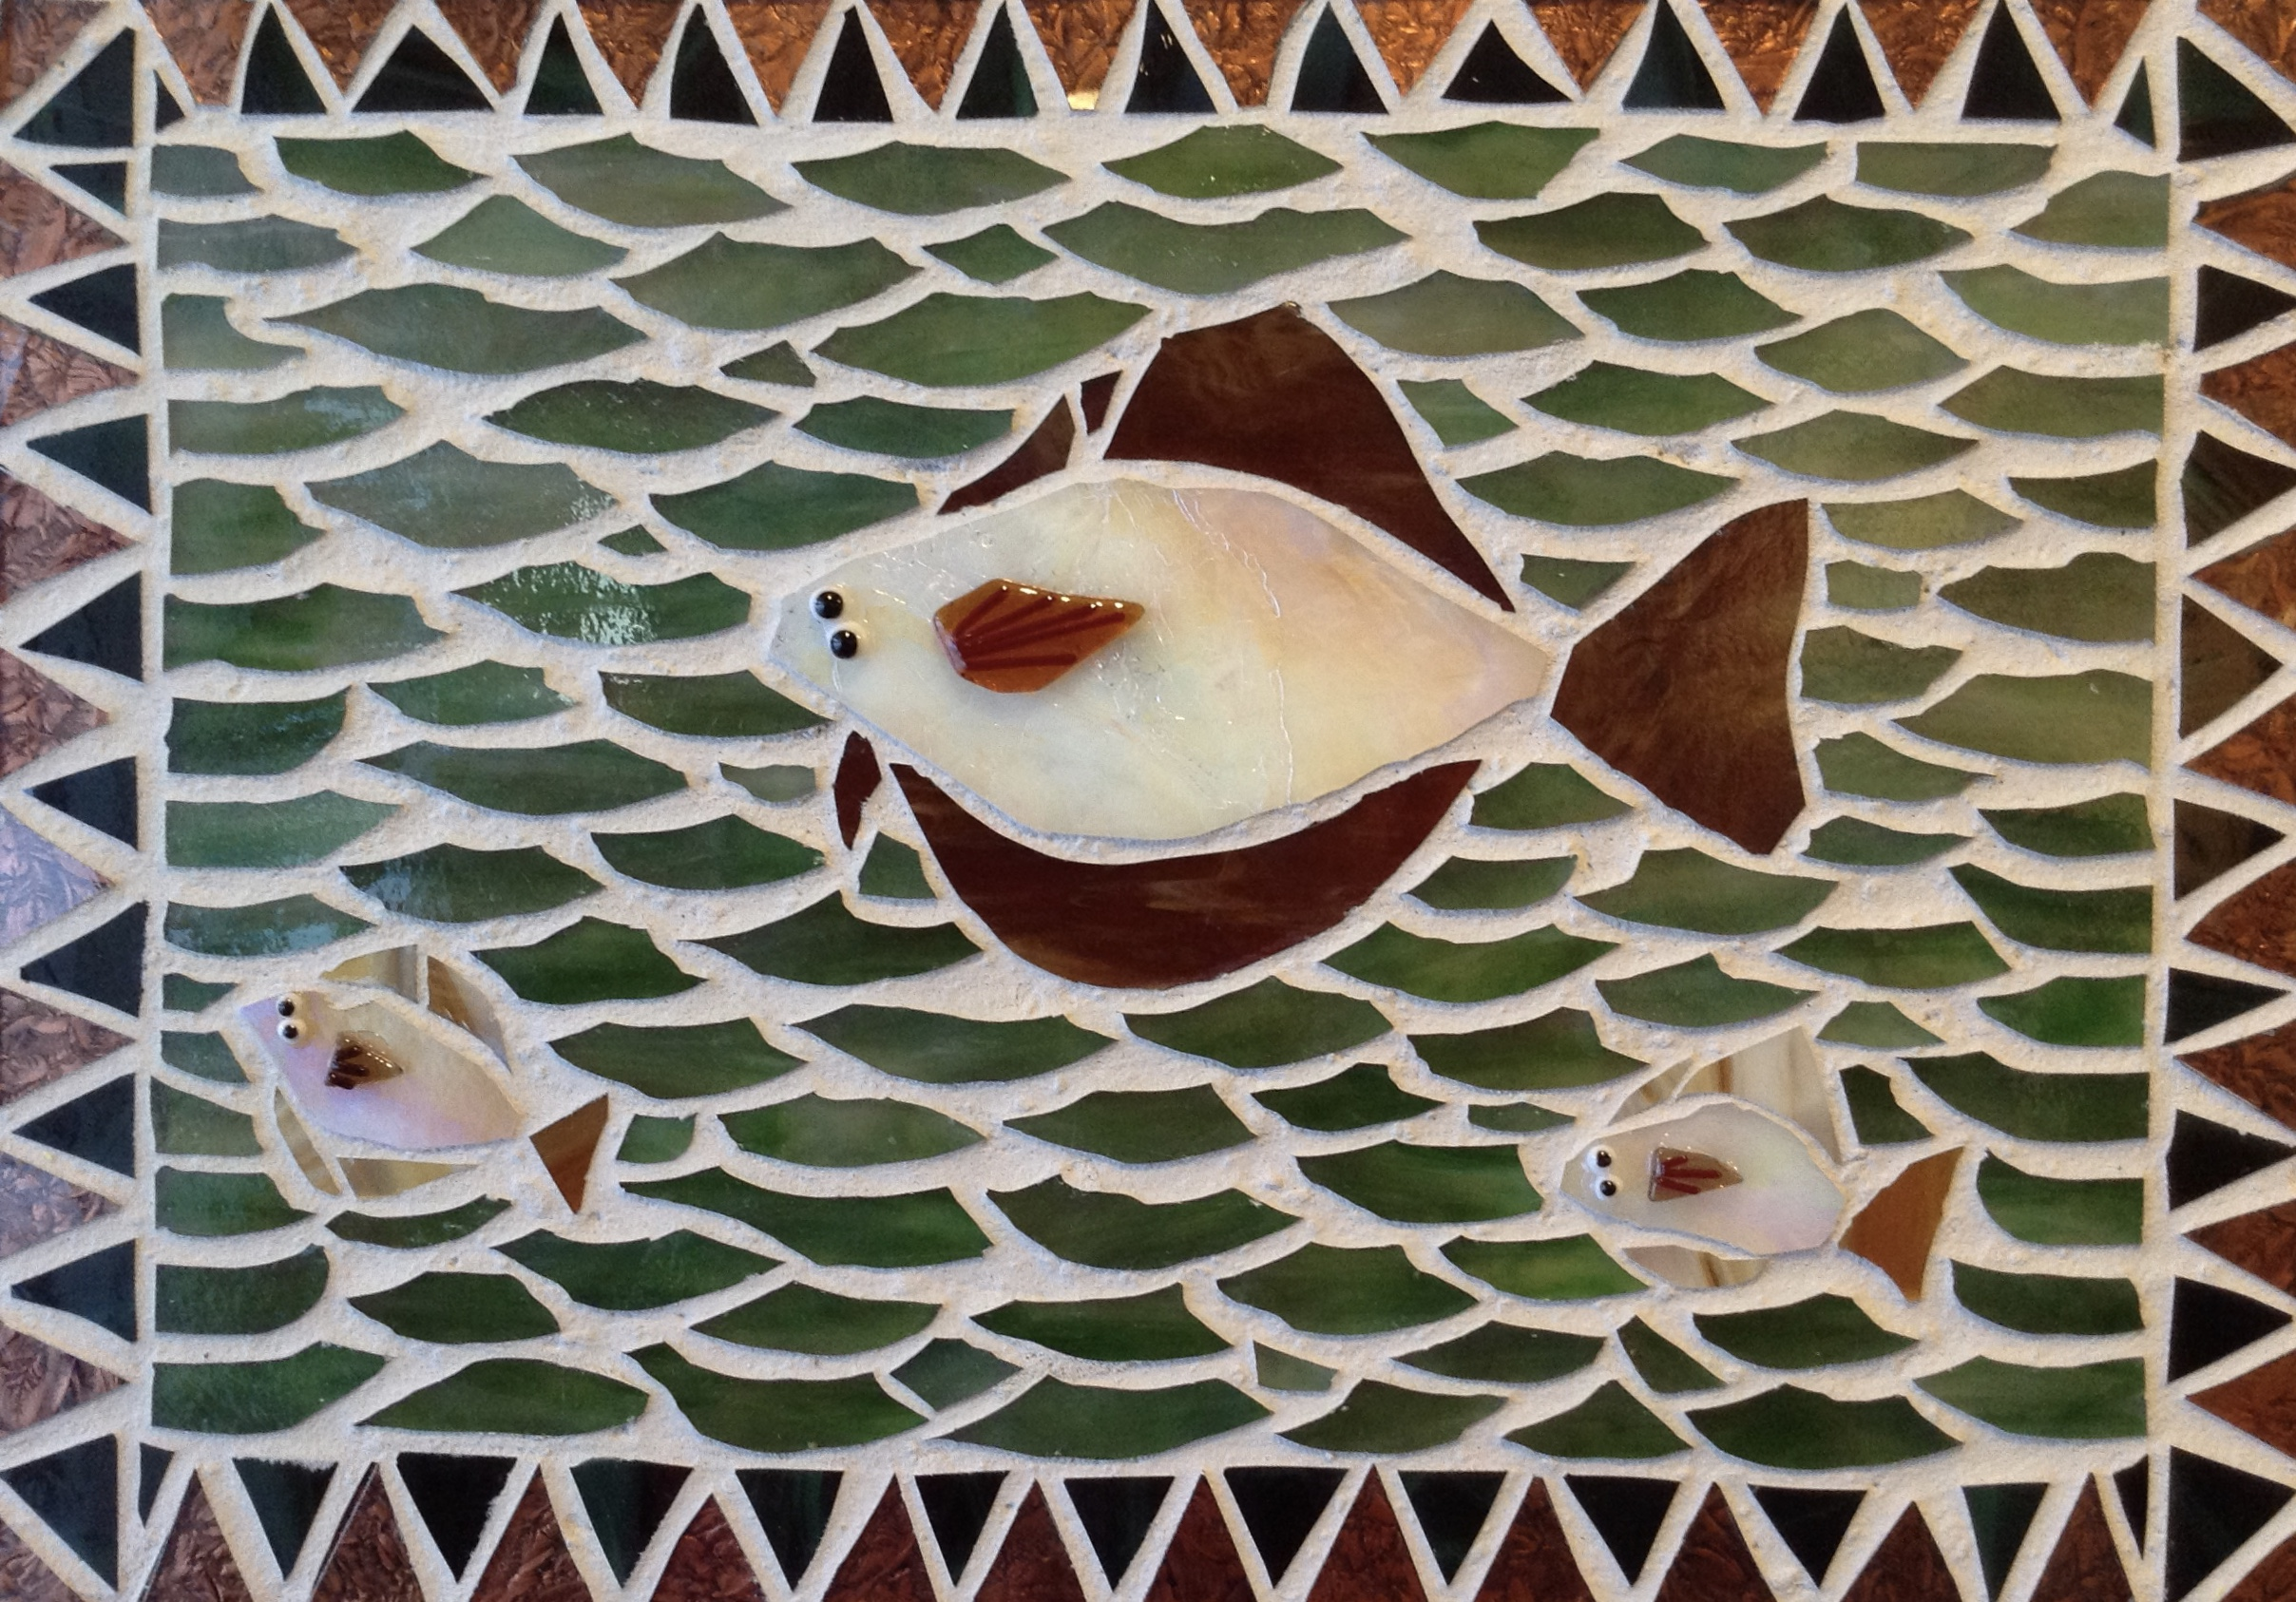 Halibut family mosaic